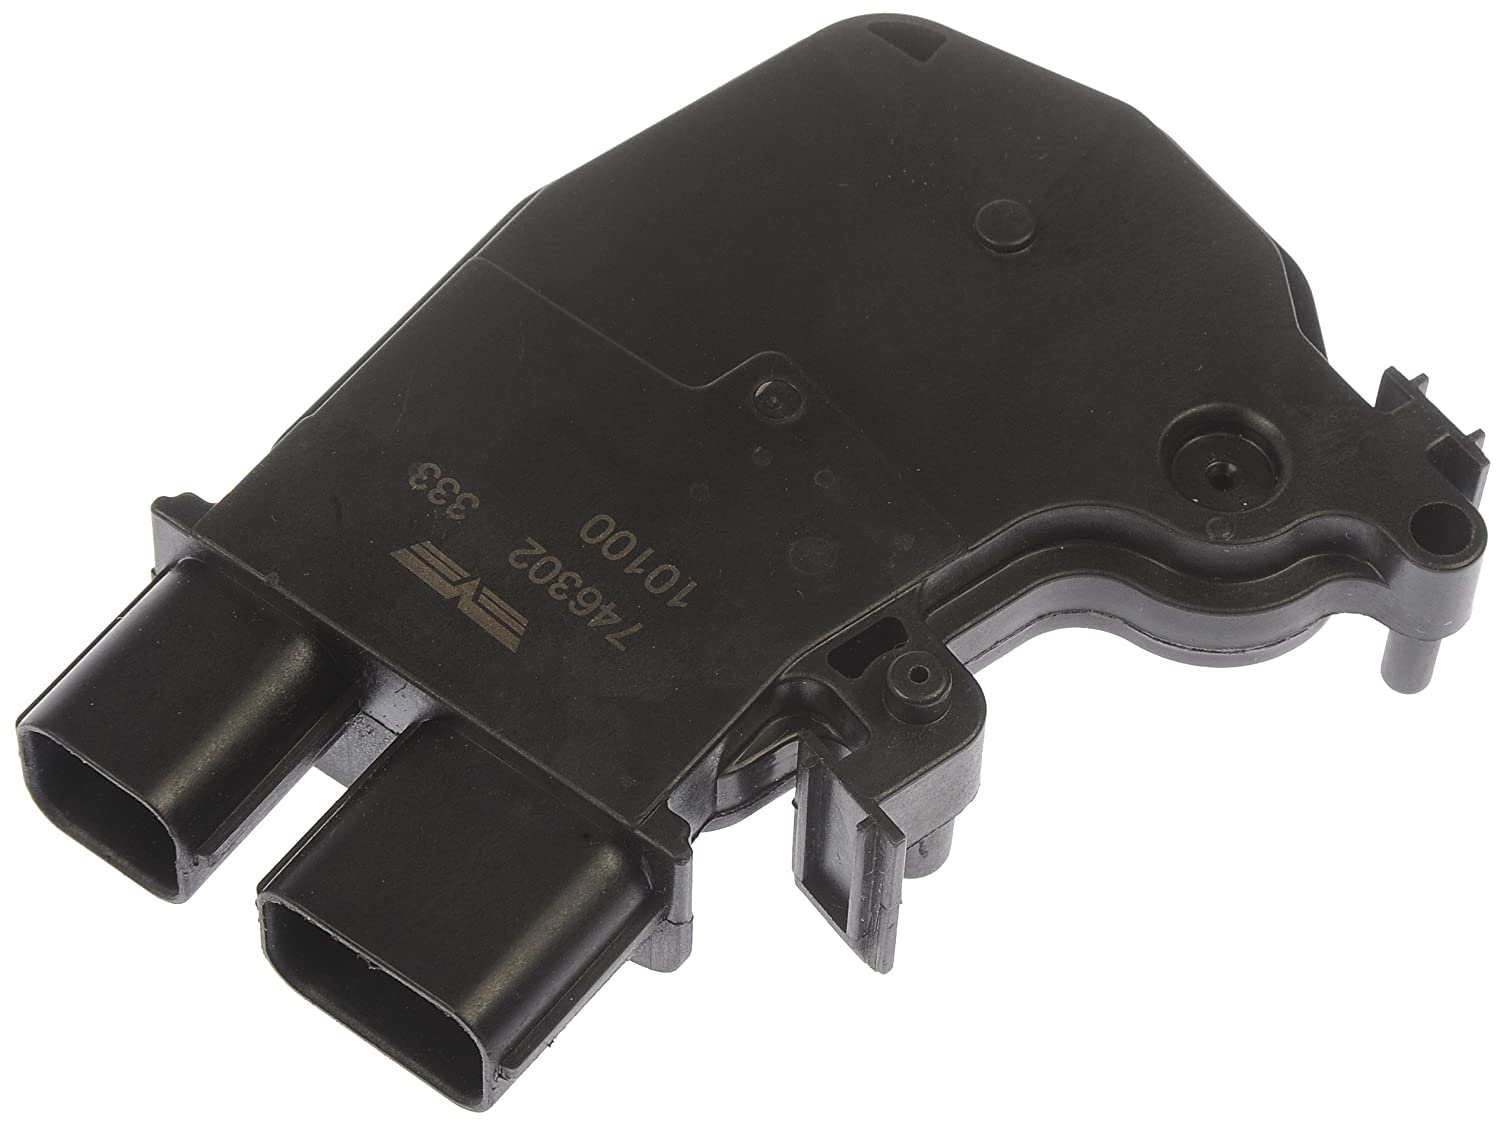 Dorman 746-302 Door Lock Actuator for Honda Accord/Civic/CR-V/Odyssey/Pilot Dorman - OE Solutions